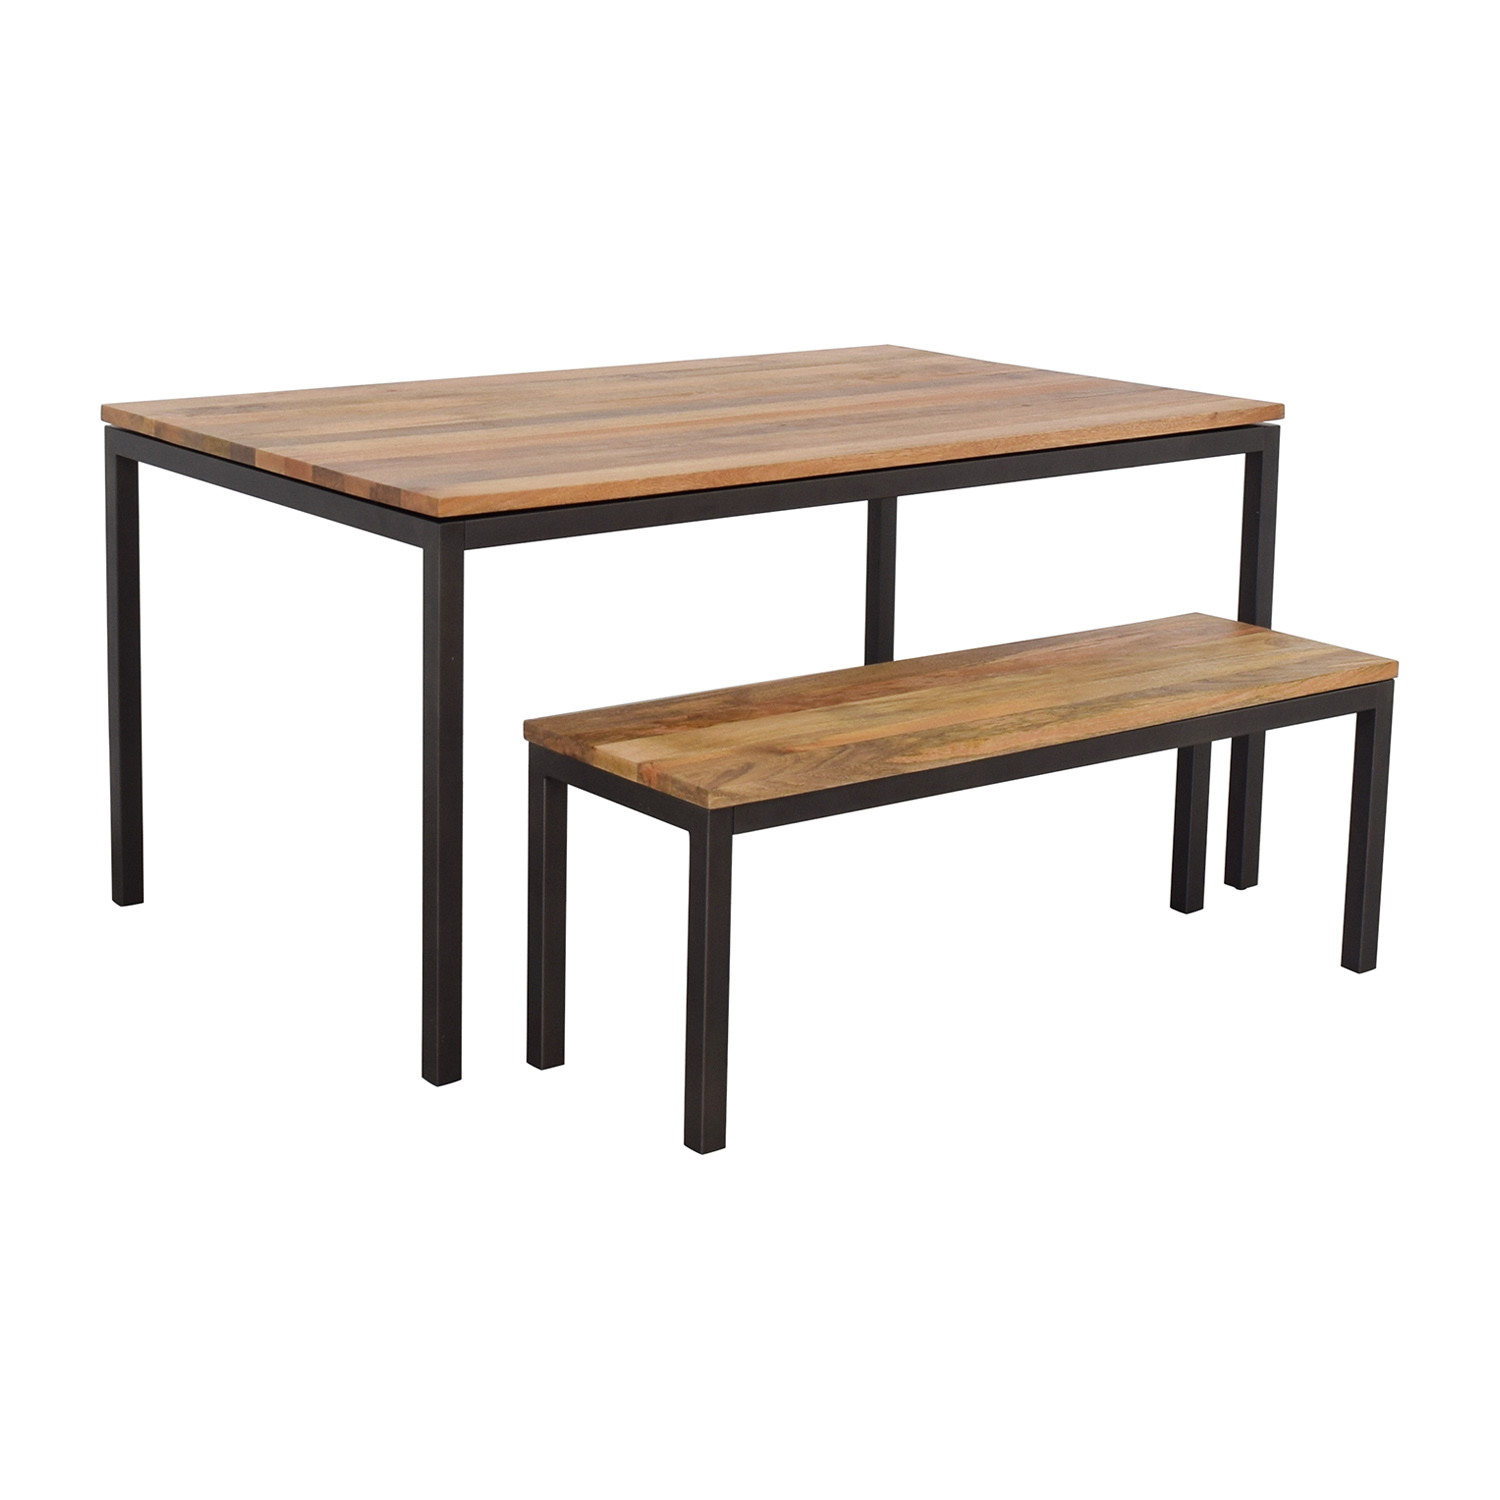 West Elm West Elm Dining Table and Bench used